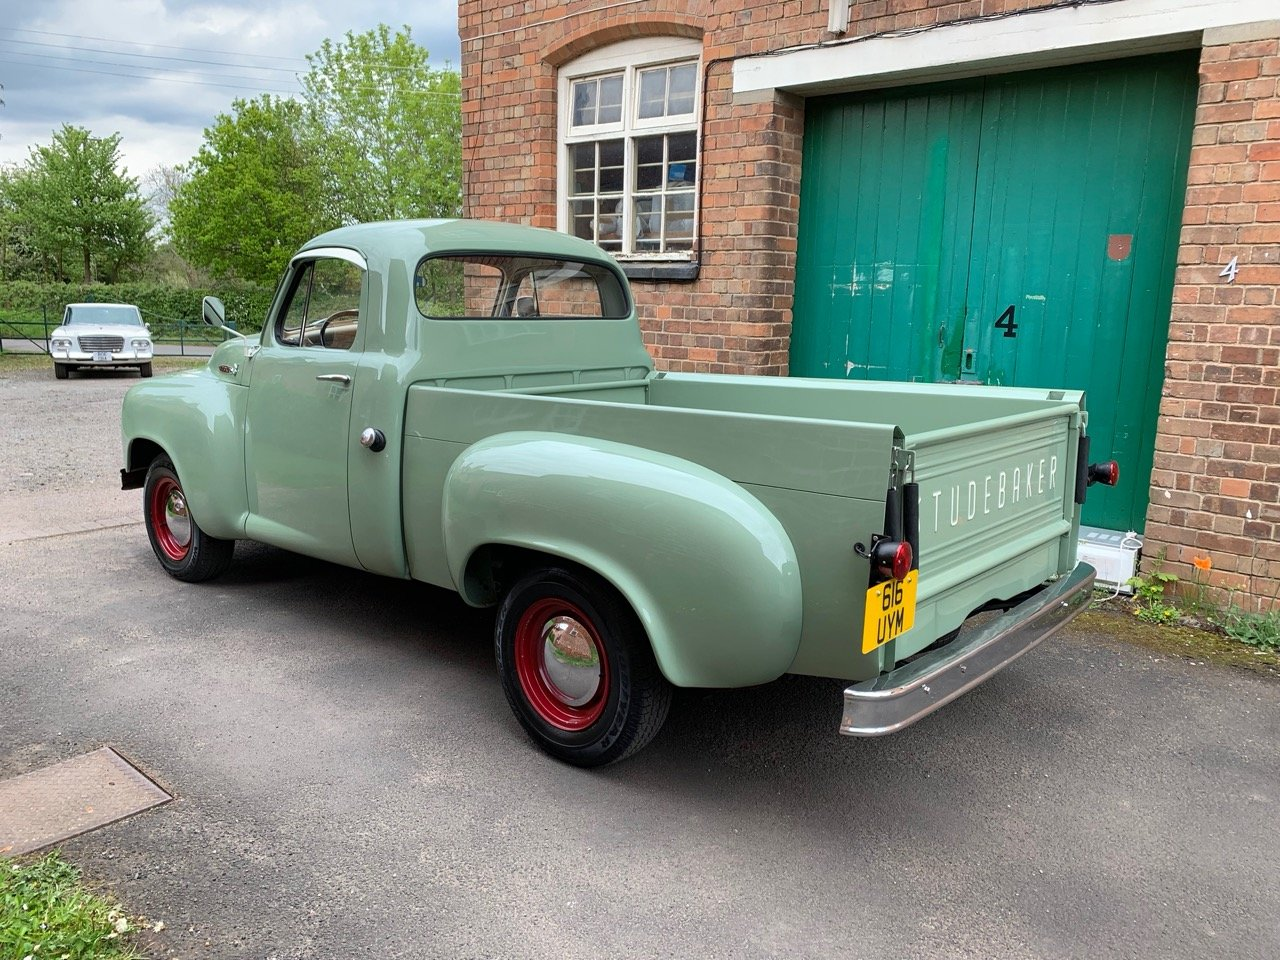 1955 STUDEBAKER E 7 HALF TON 289 V 8 PICK UP TRUCK For Sale (picture 2 of 6)